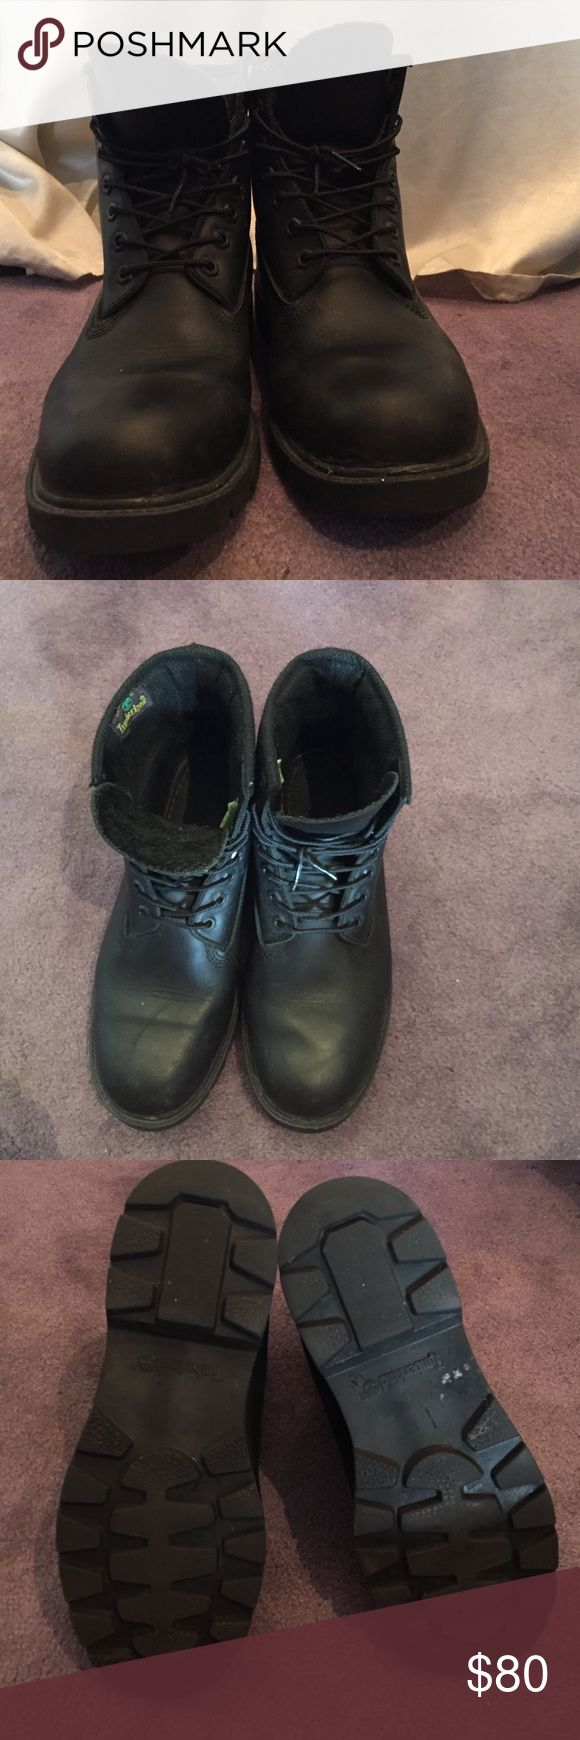 Black Timberland boots Black timberland boots. Worn a good amount of times but still in great condition. No stains or signs of damage. Timberland Shoes Boots